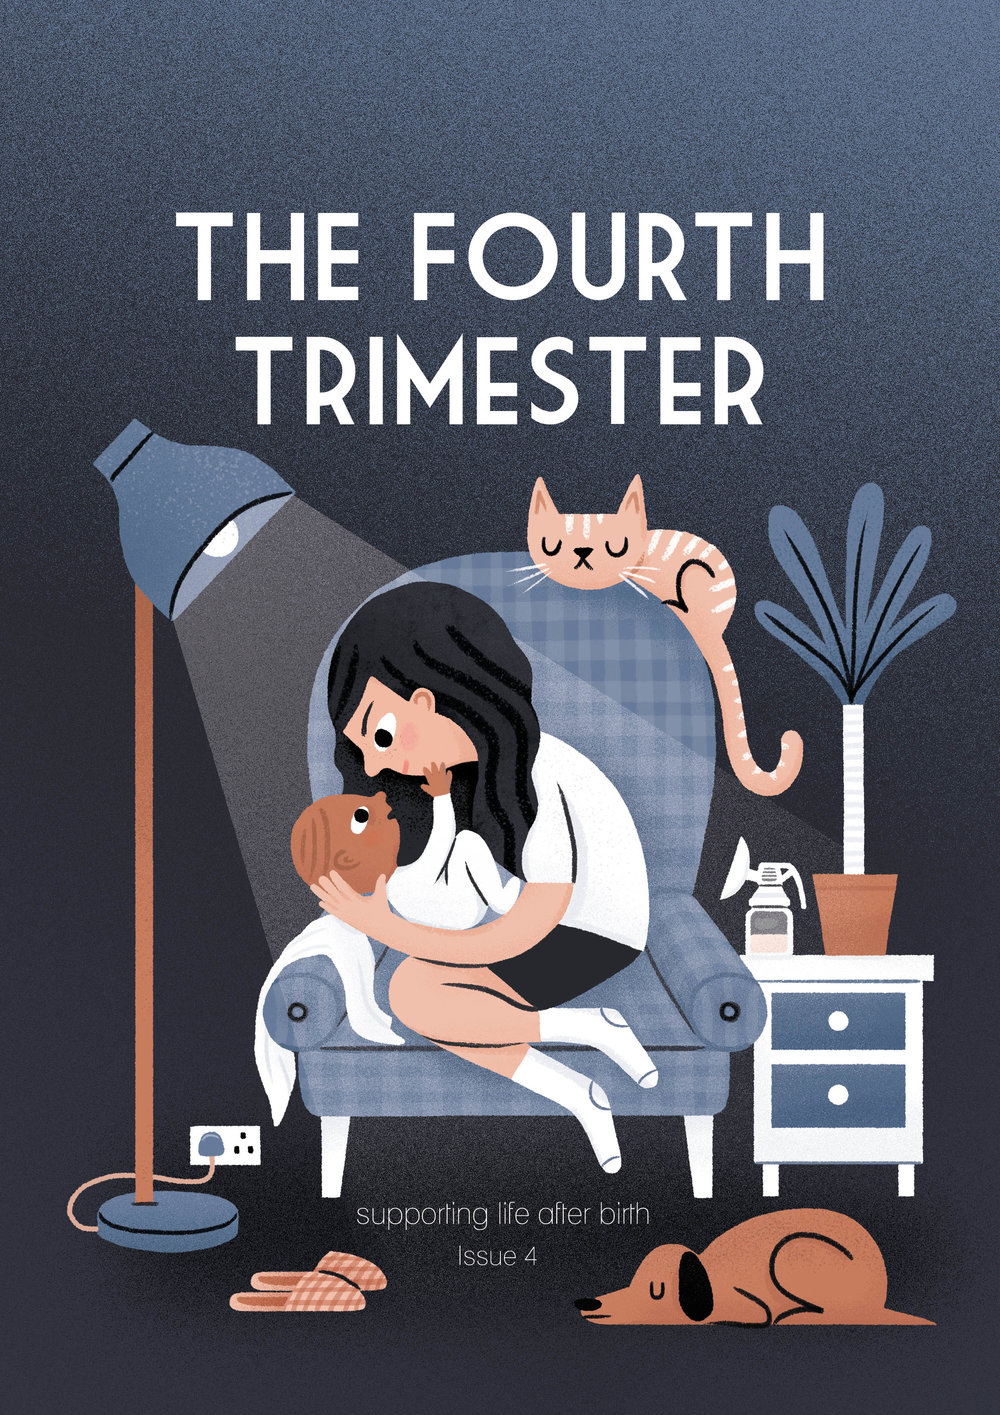 A cover for 'Fourth Trimester' magazine (this illustration ended being used to accompany an article on the inside of the magazine)